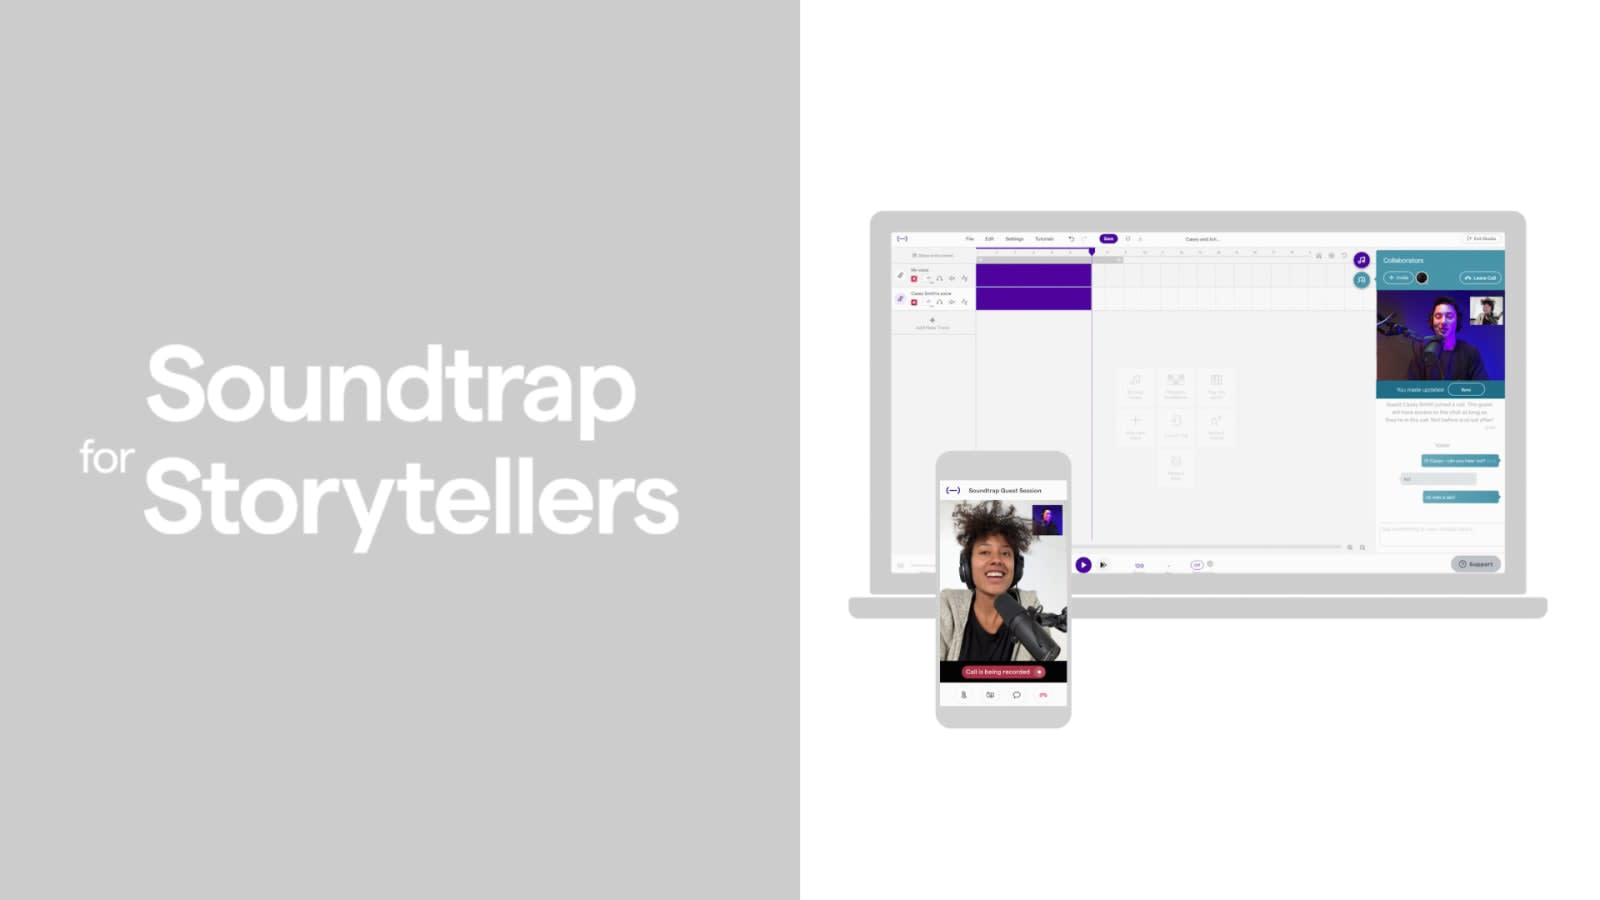 Soundtrap for Storytellers is Spotify's latest play for podcasters